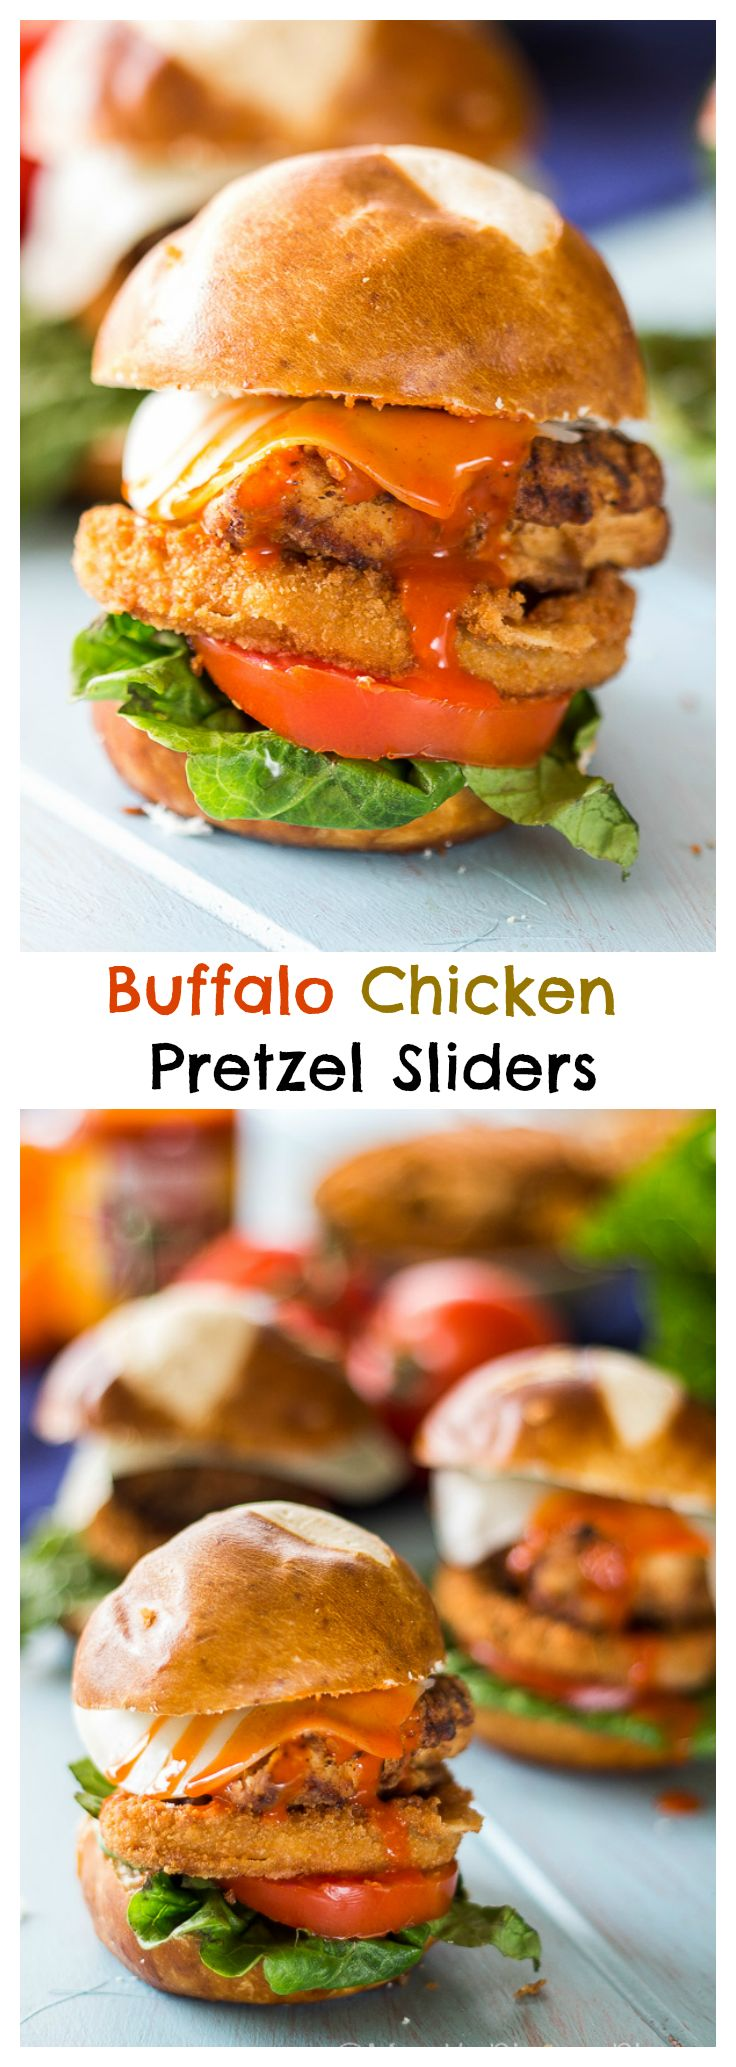 These Fried Chicken Buffalo Pretzel Sliders are the perfect summer party food. Thin slices of provolone cheese are melted over crispy fried chicken pieces, topped with buffalo sauce and served on mini pretzel buns.